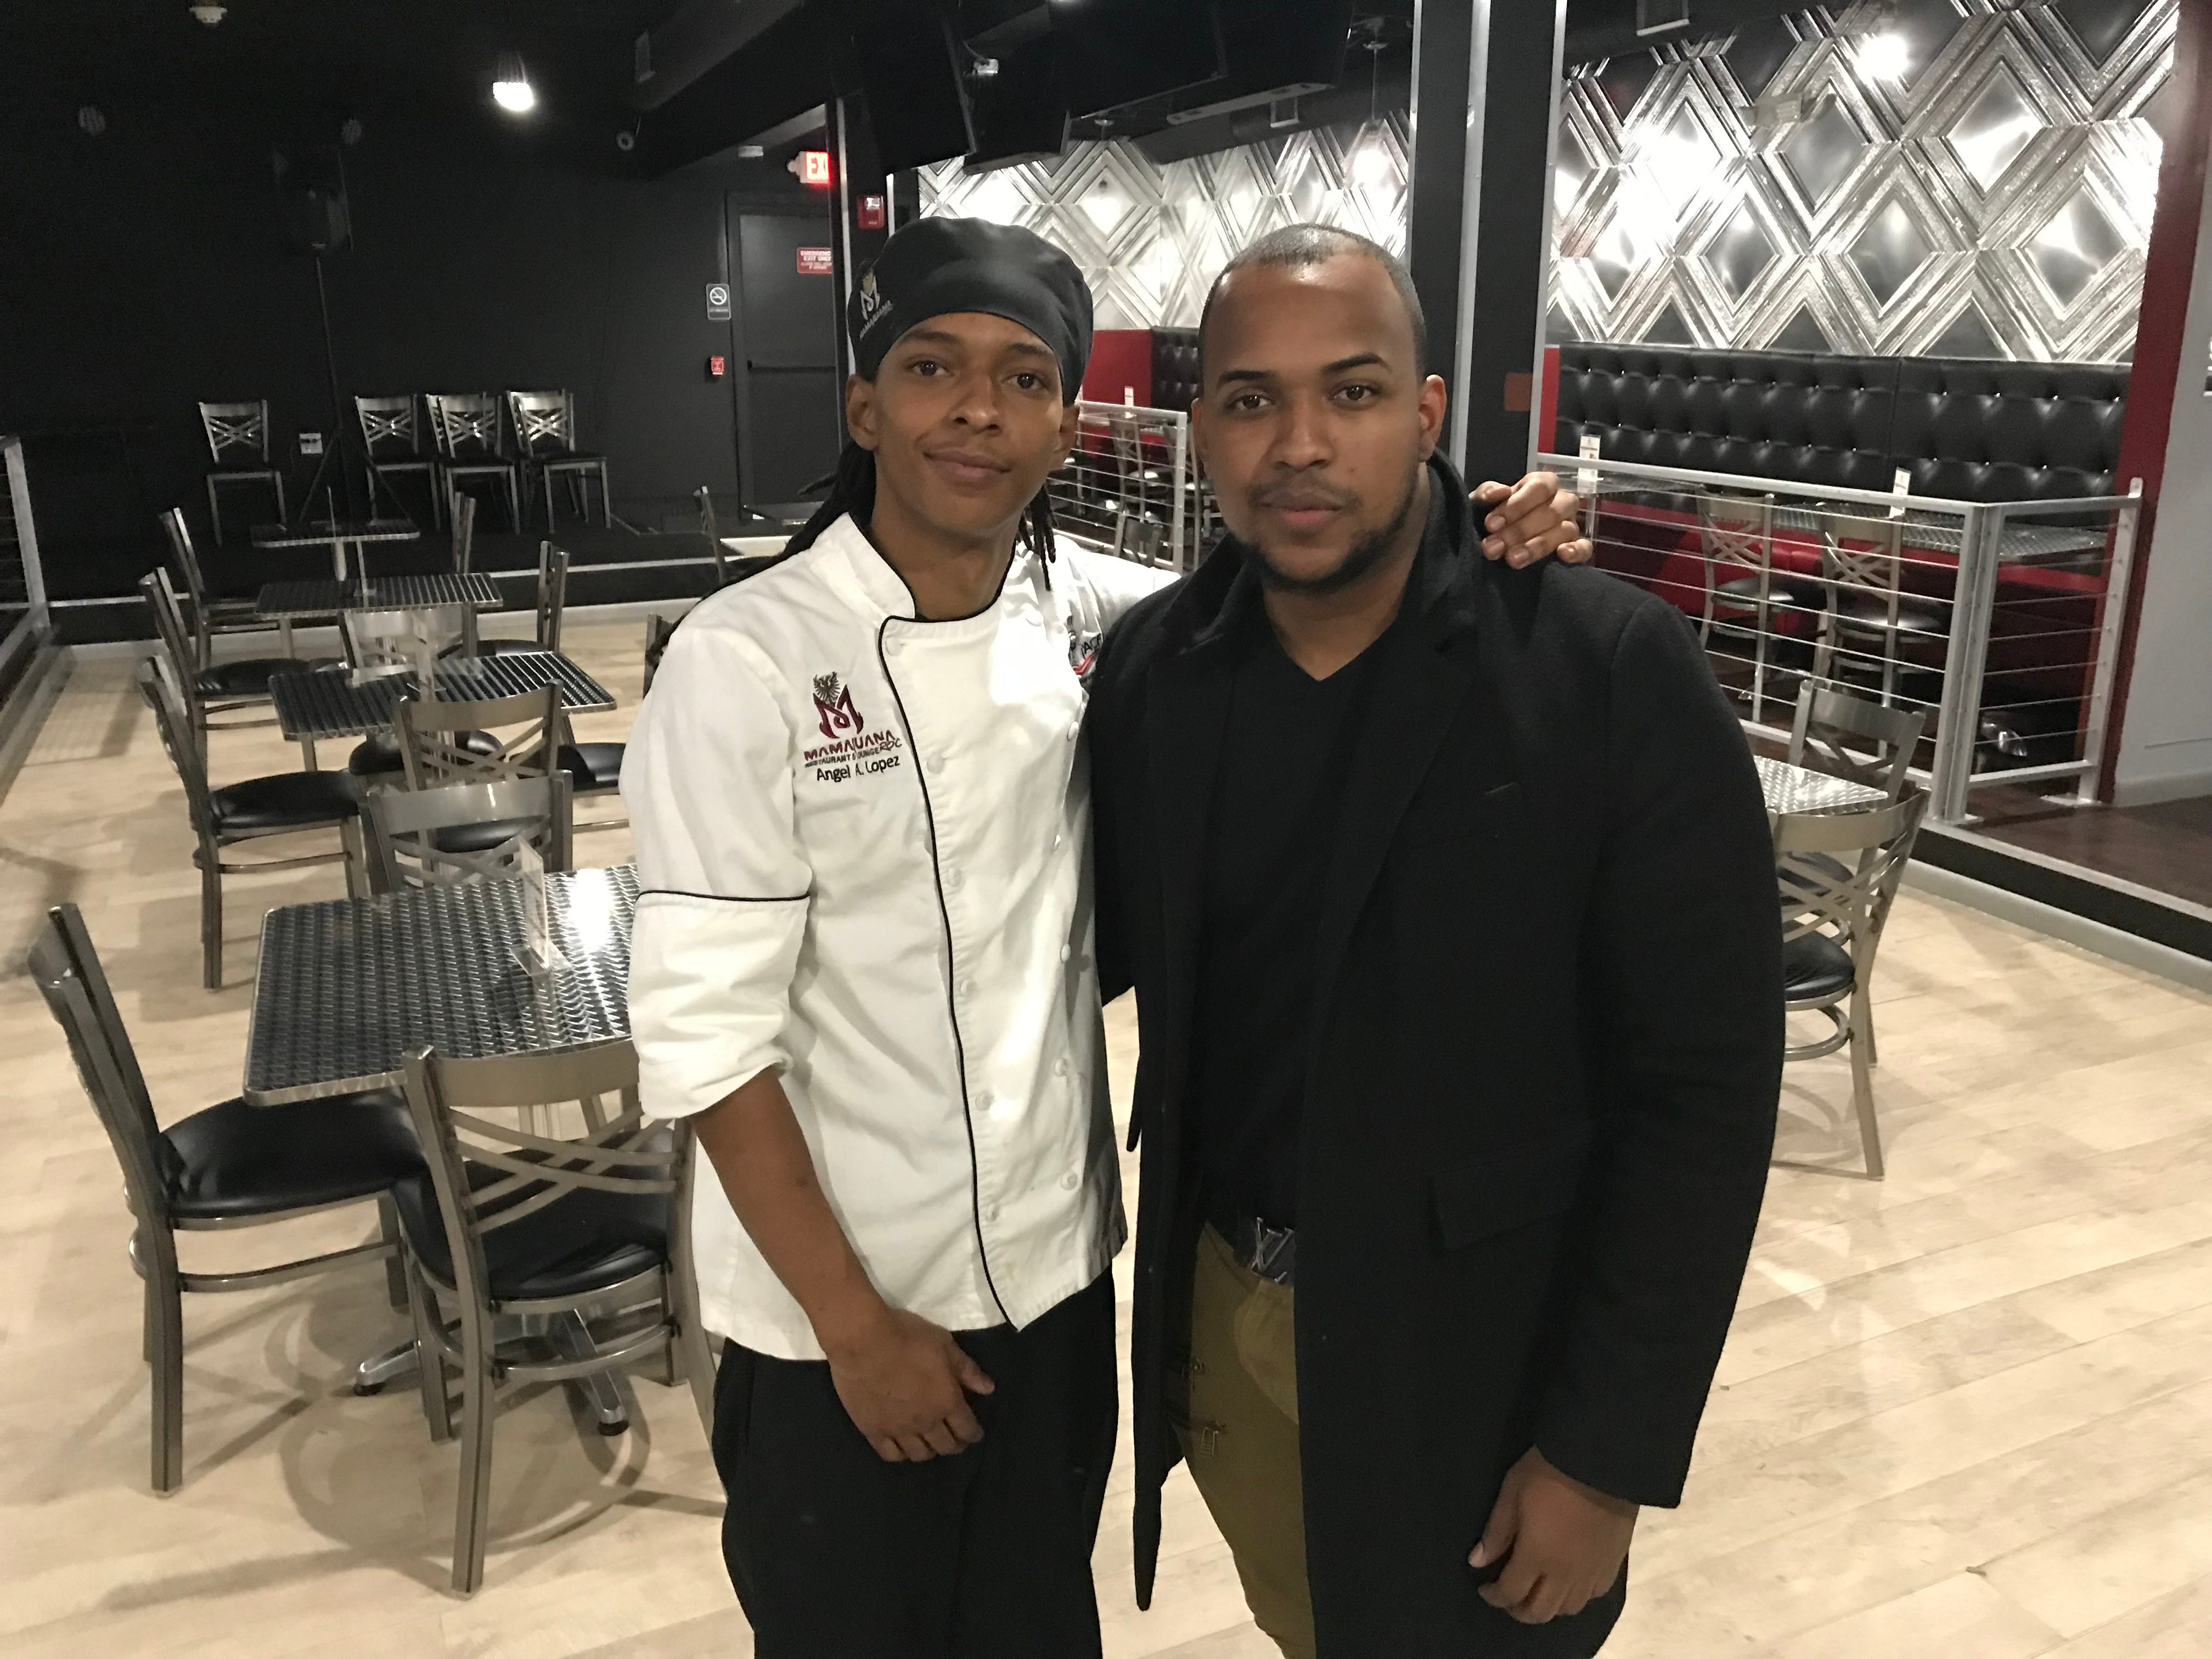 Marcos Lopez, right, is the owner of MamaJuana Restaurant and Lounge. His brother, Angel Lopez, is head chef.